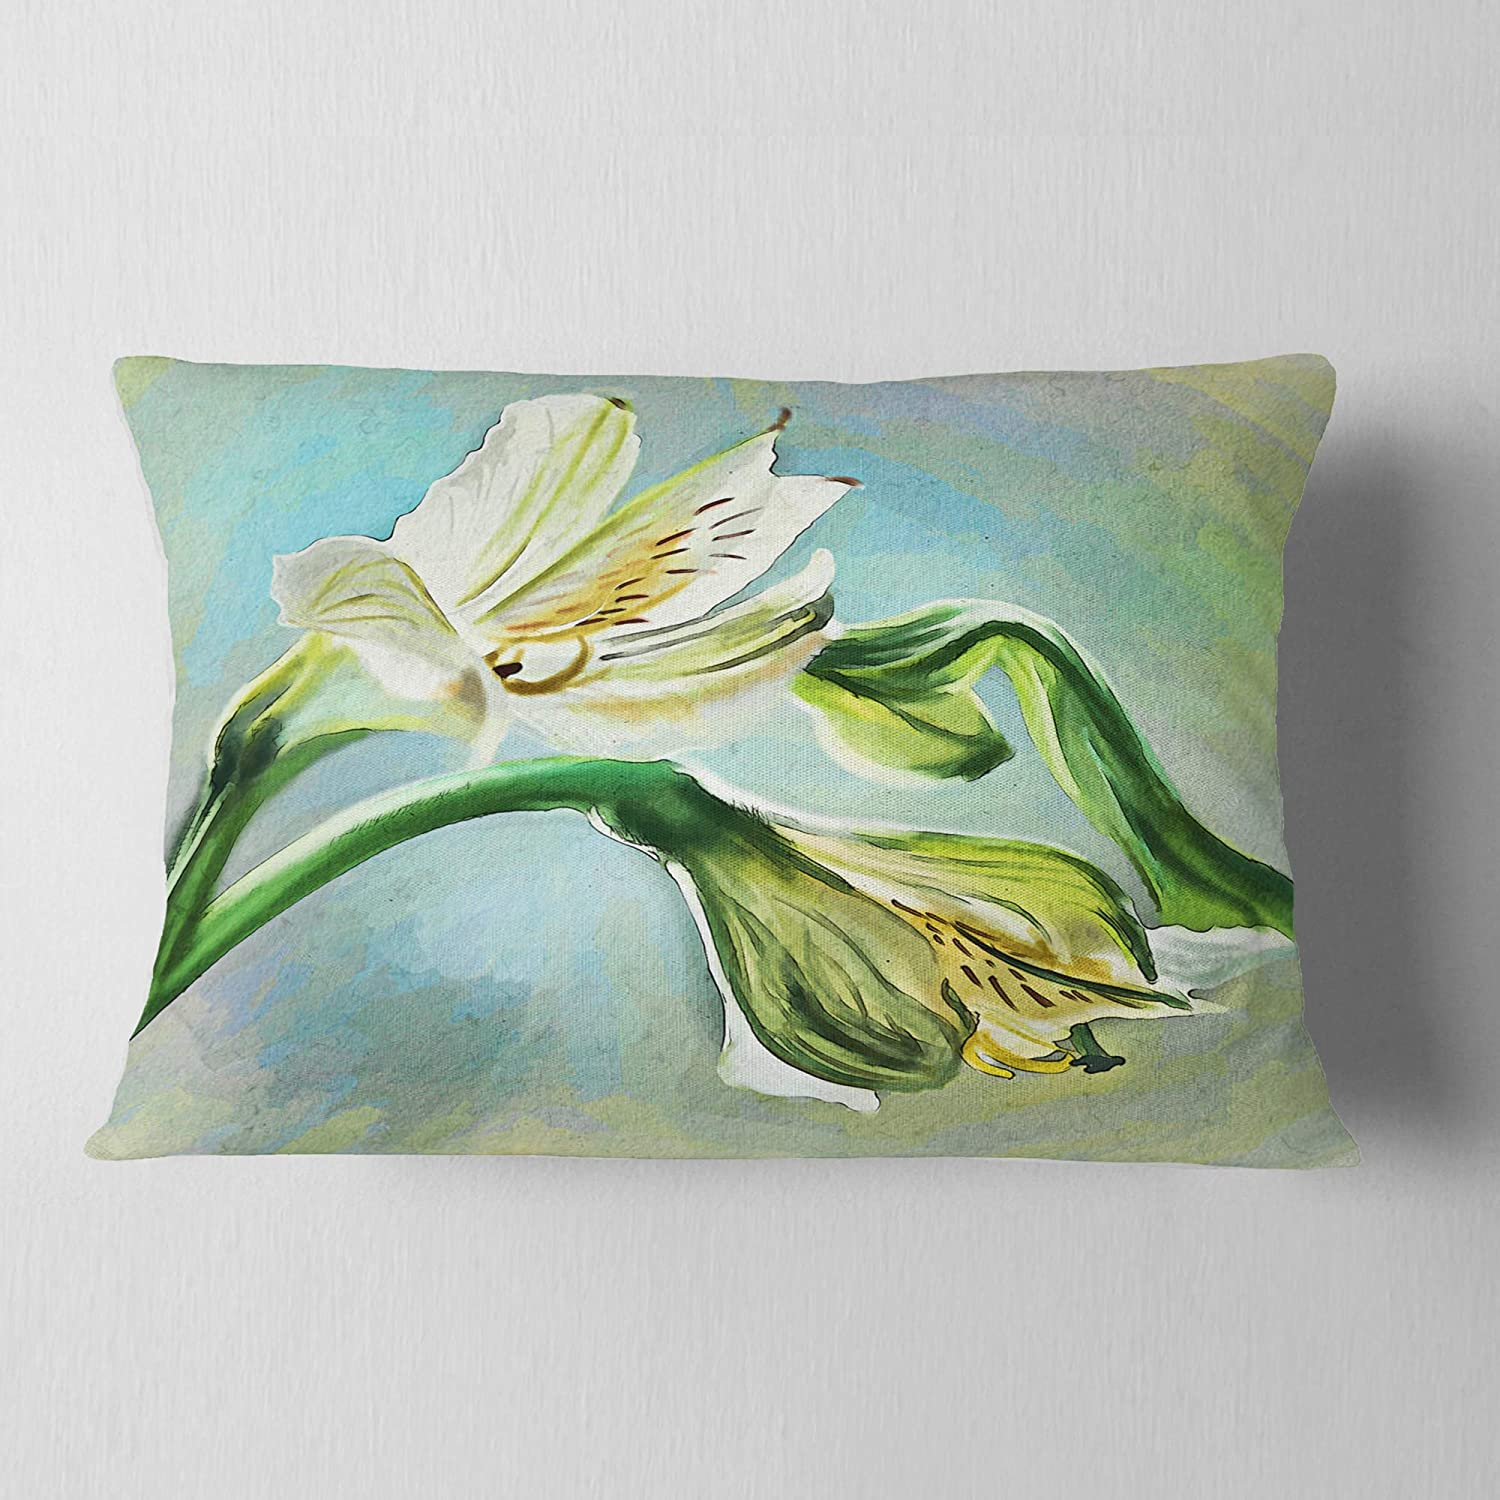 Sofa Throw Pillow 12 In In Designart Cu13490 12 20 White Lily Flower Sketch Watercolor Floral Lumbar Cushion Cover For Living Room X 20 In Home Kitchen Bedding